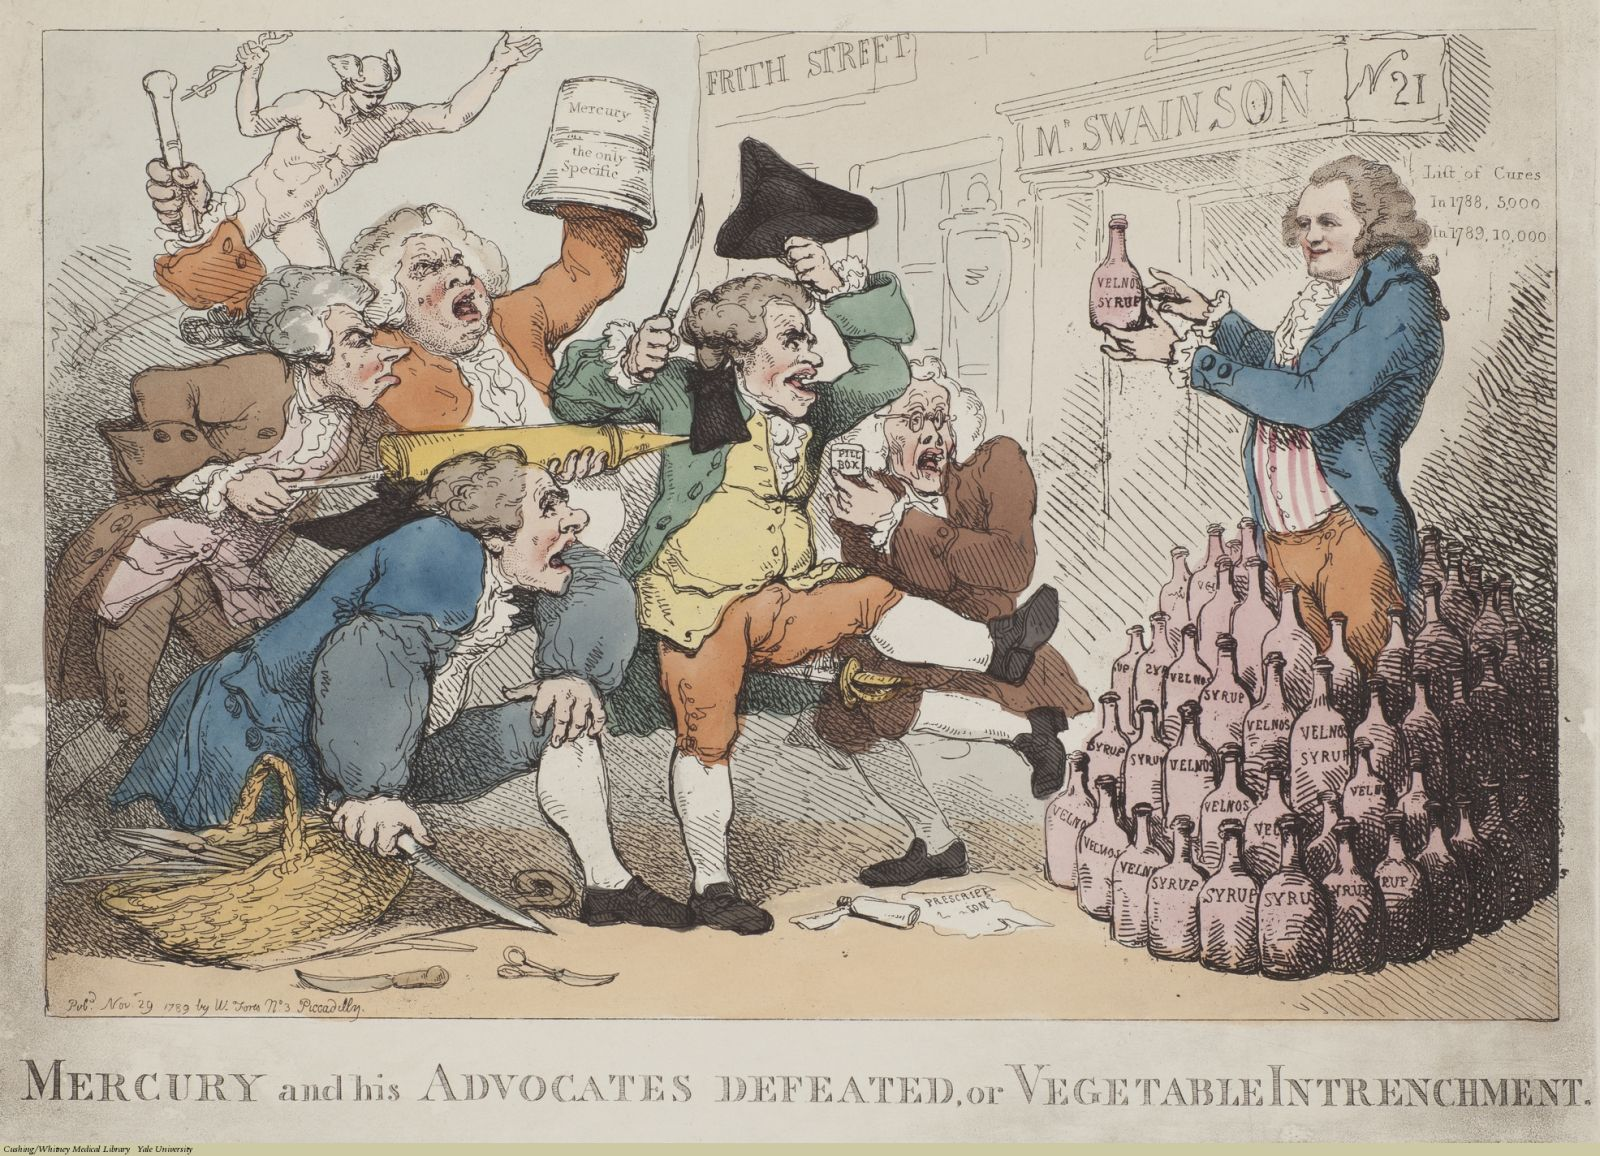 Mercury and his Advocates Defeated, or Vegetable Intrenchment. Thomas Rowlandson, Etching coloured, 1789. Subject: Isaac Swainson, Velnos Syrup, Proprietary Medicines.